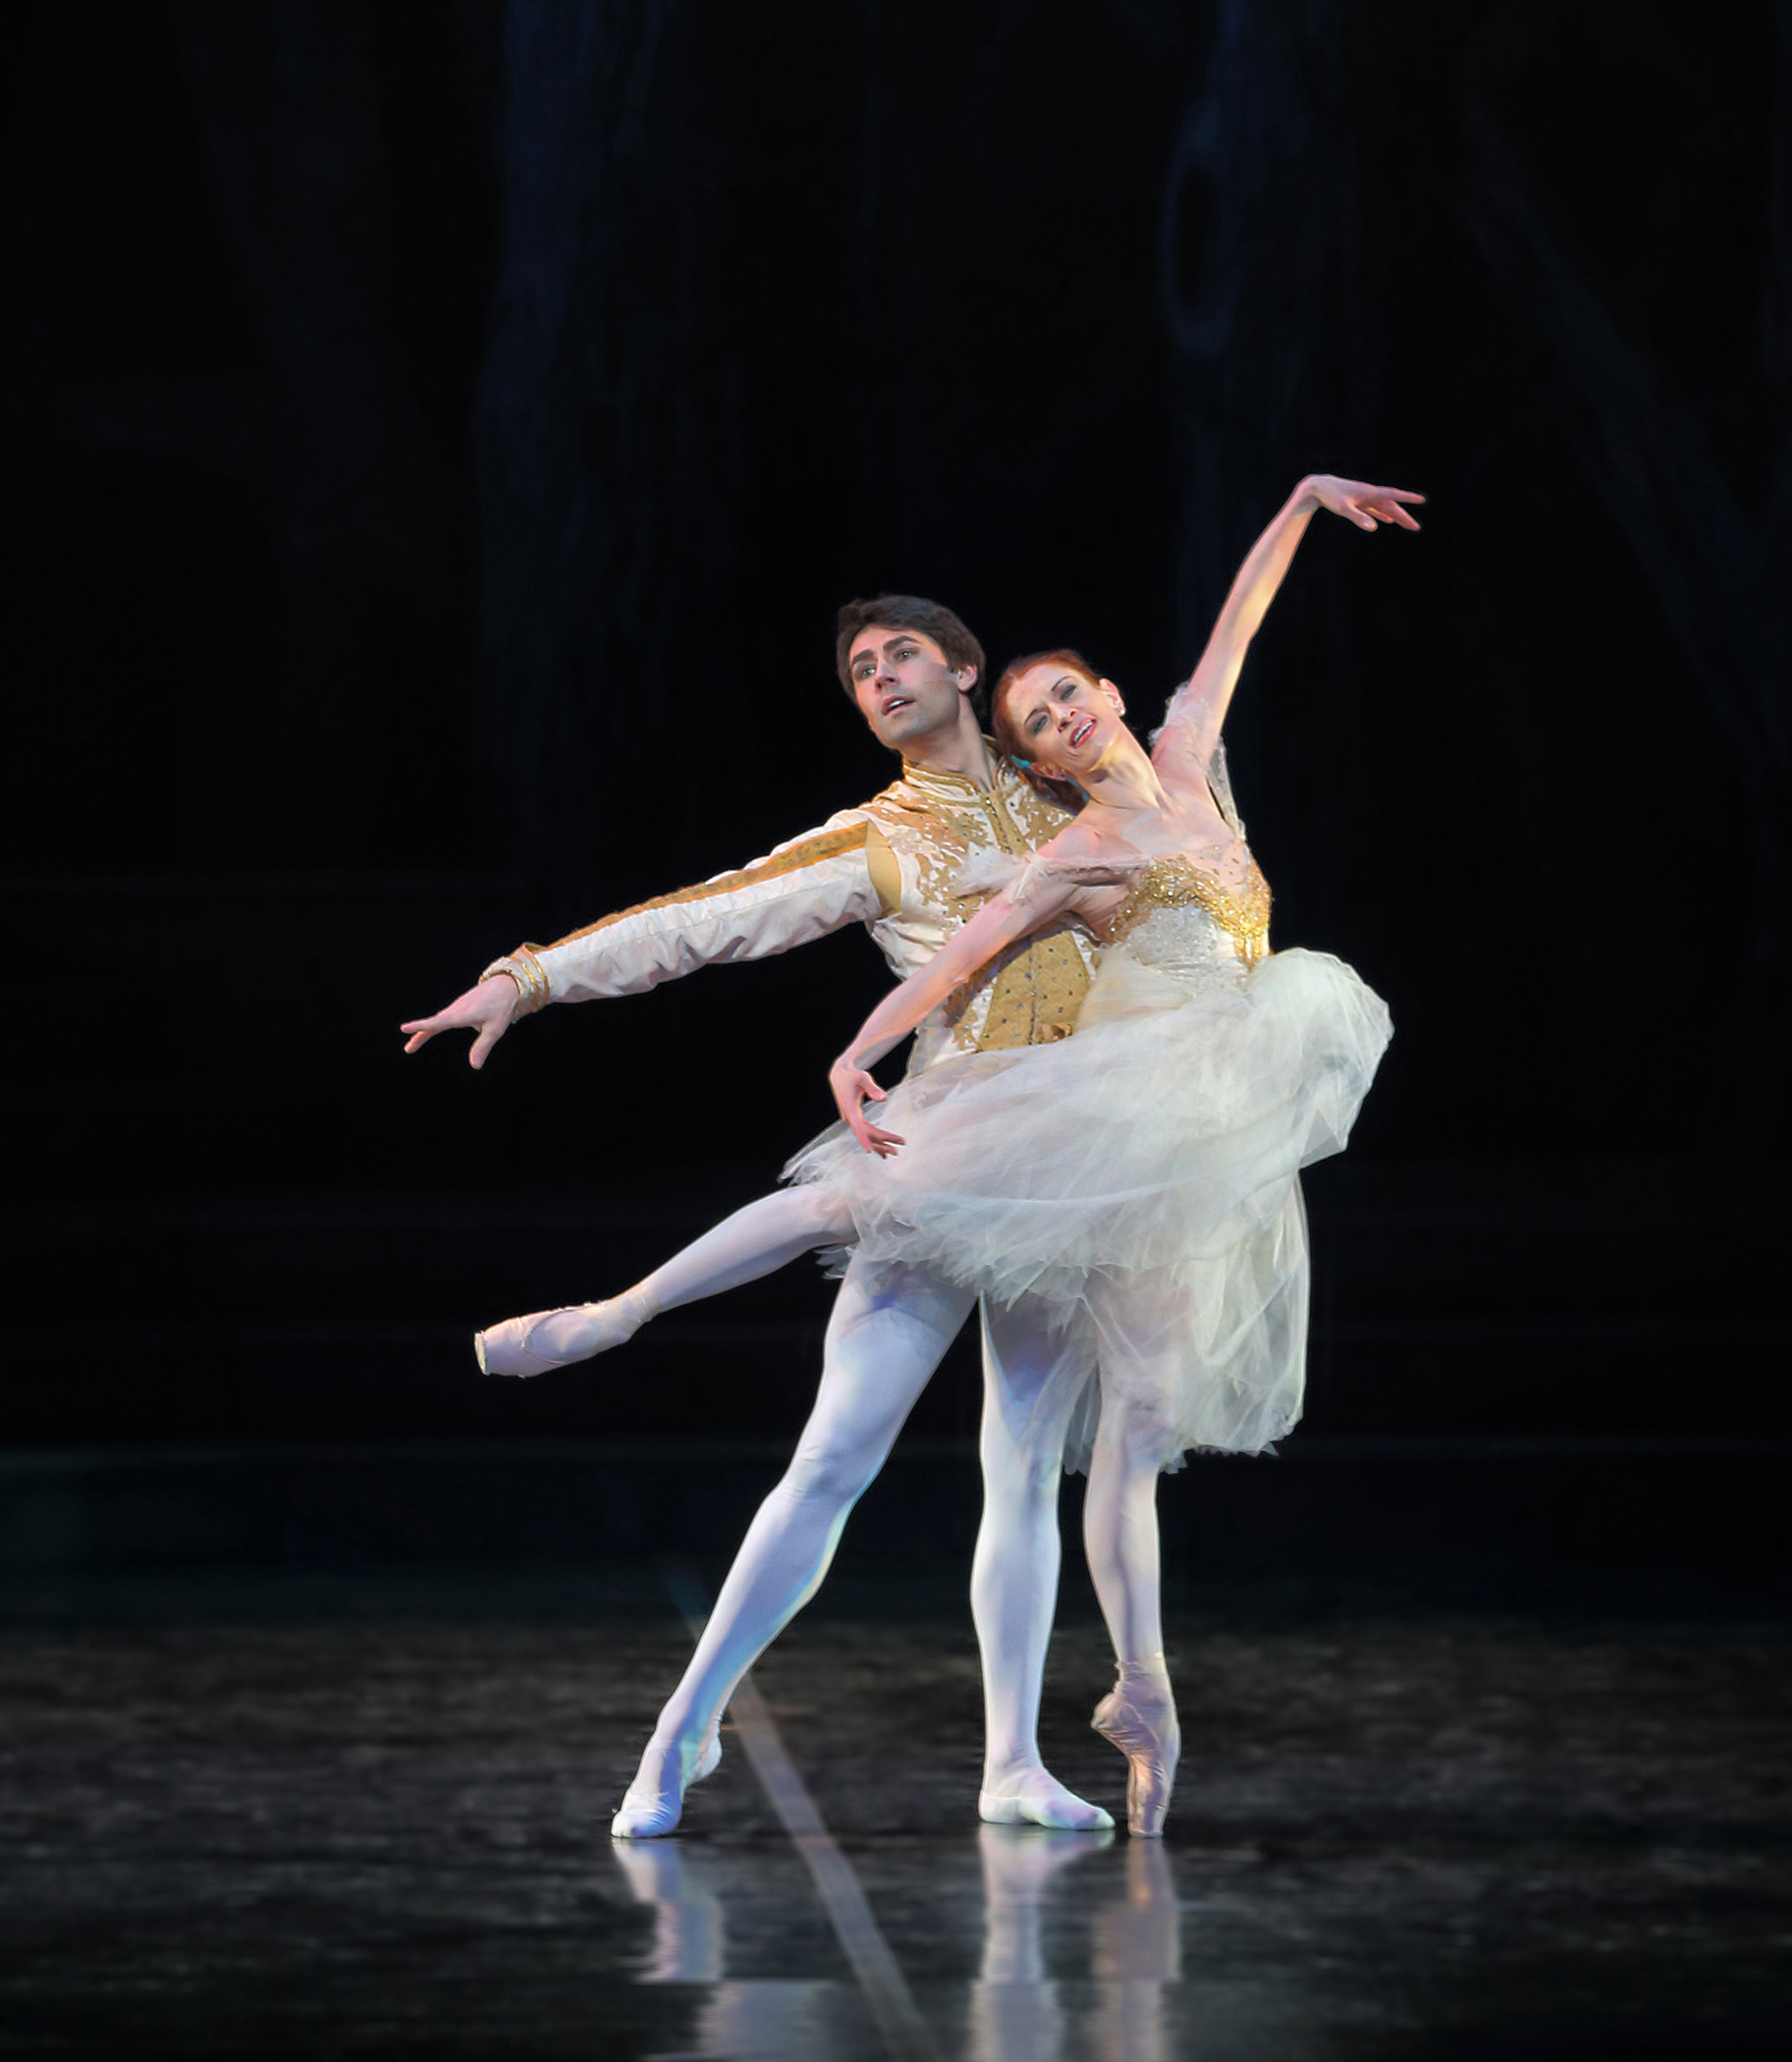 Maria Mosina and Alexei Tyukov in Cinderella - photo by Mike Watson